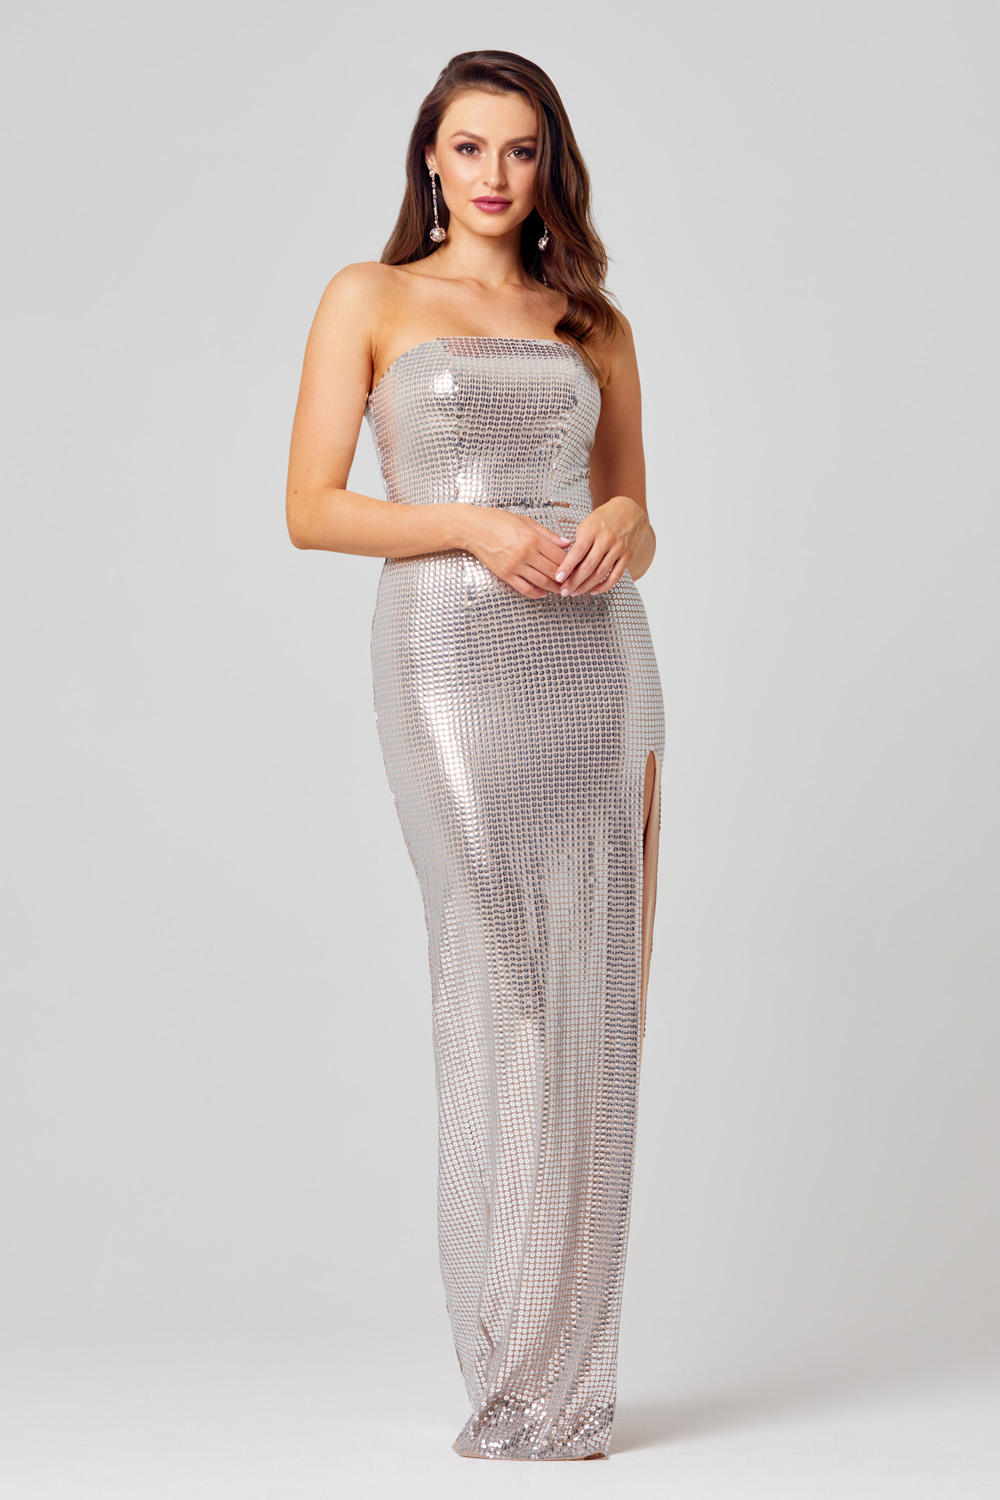 Lexi Strapless Sequin Formal Dress - PO823